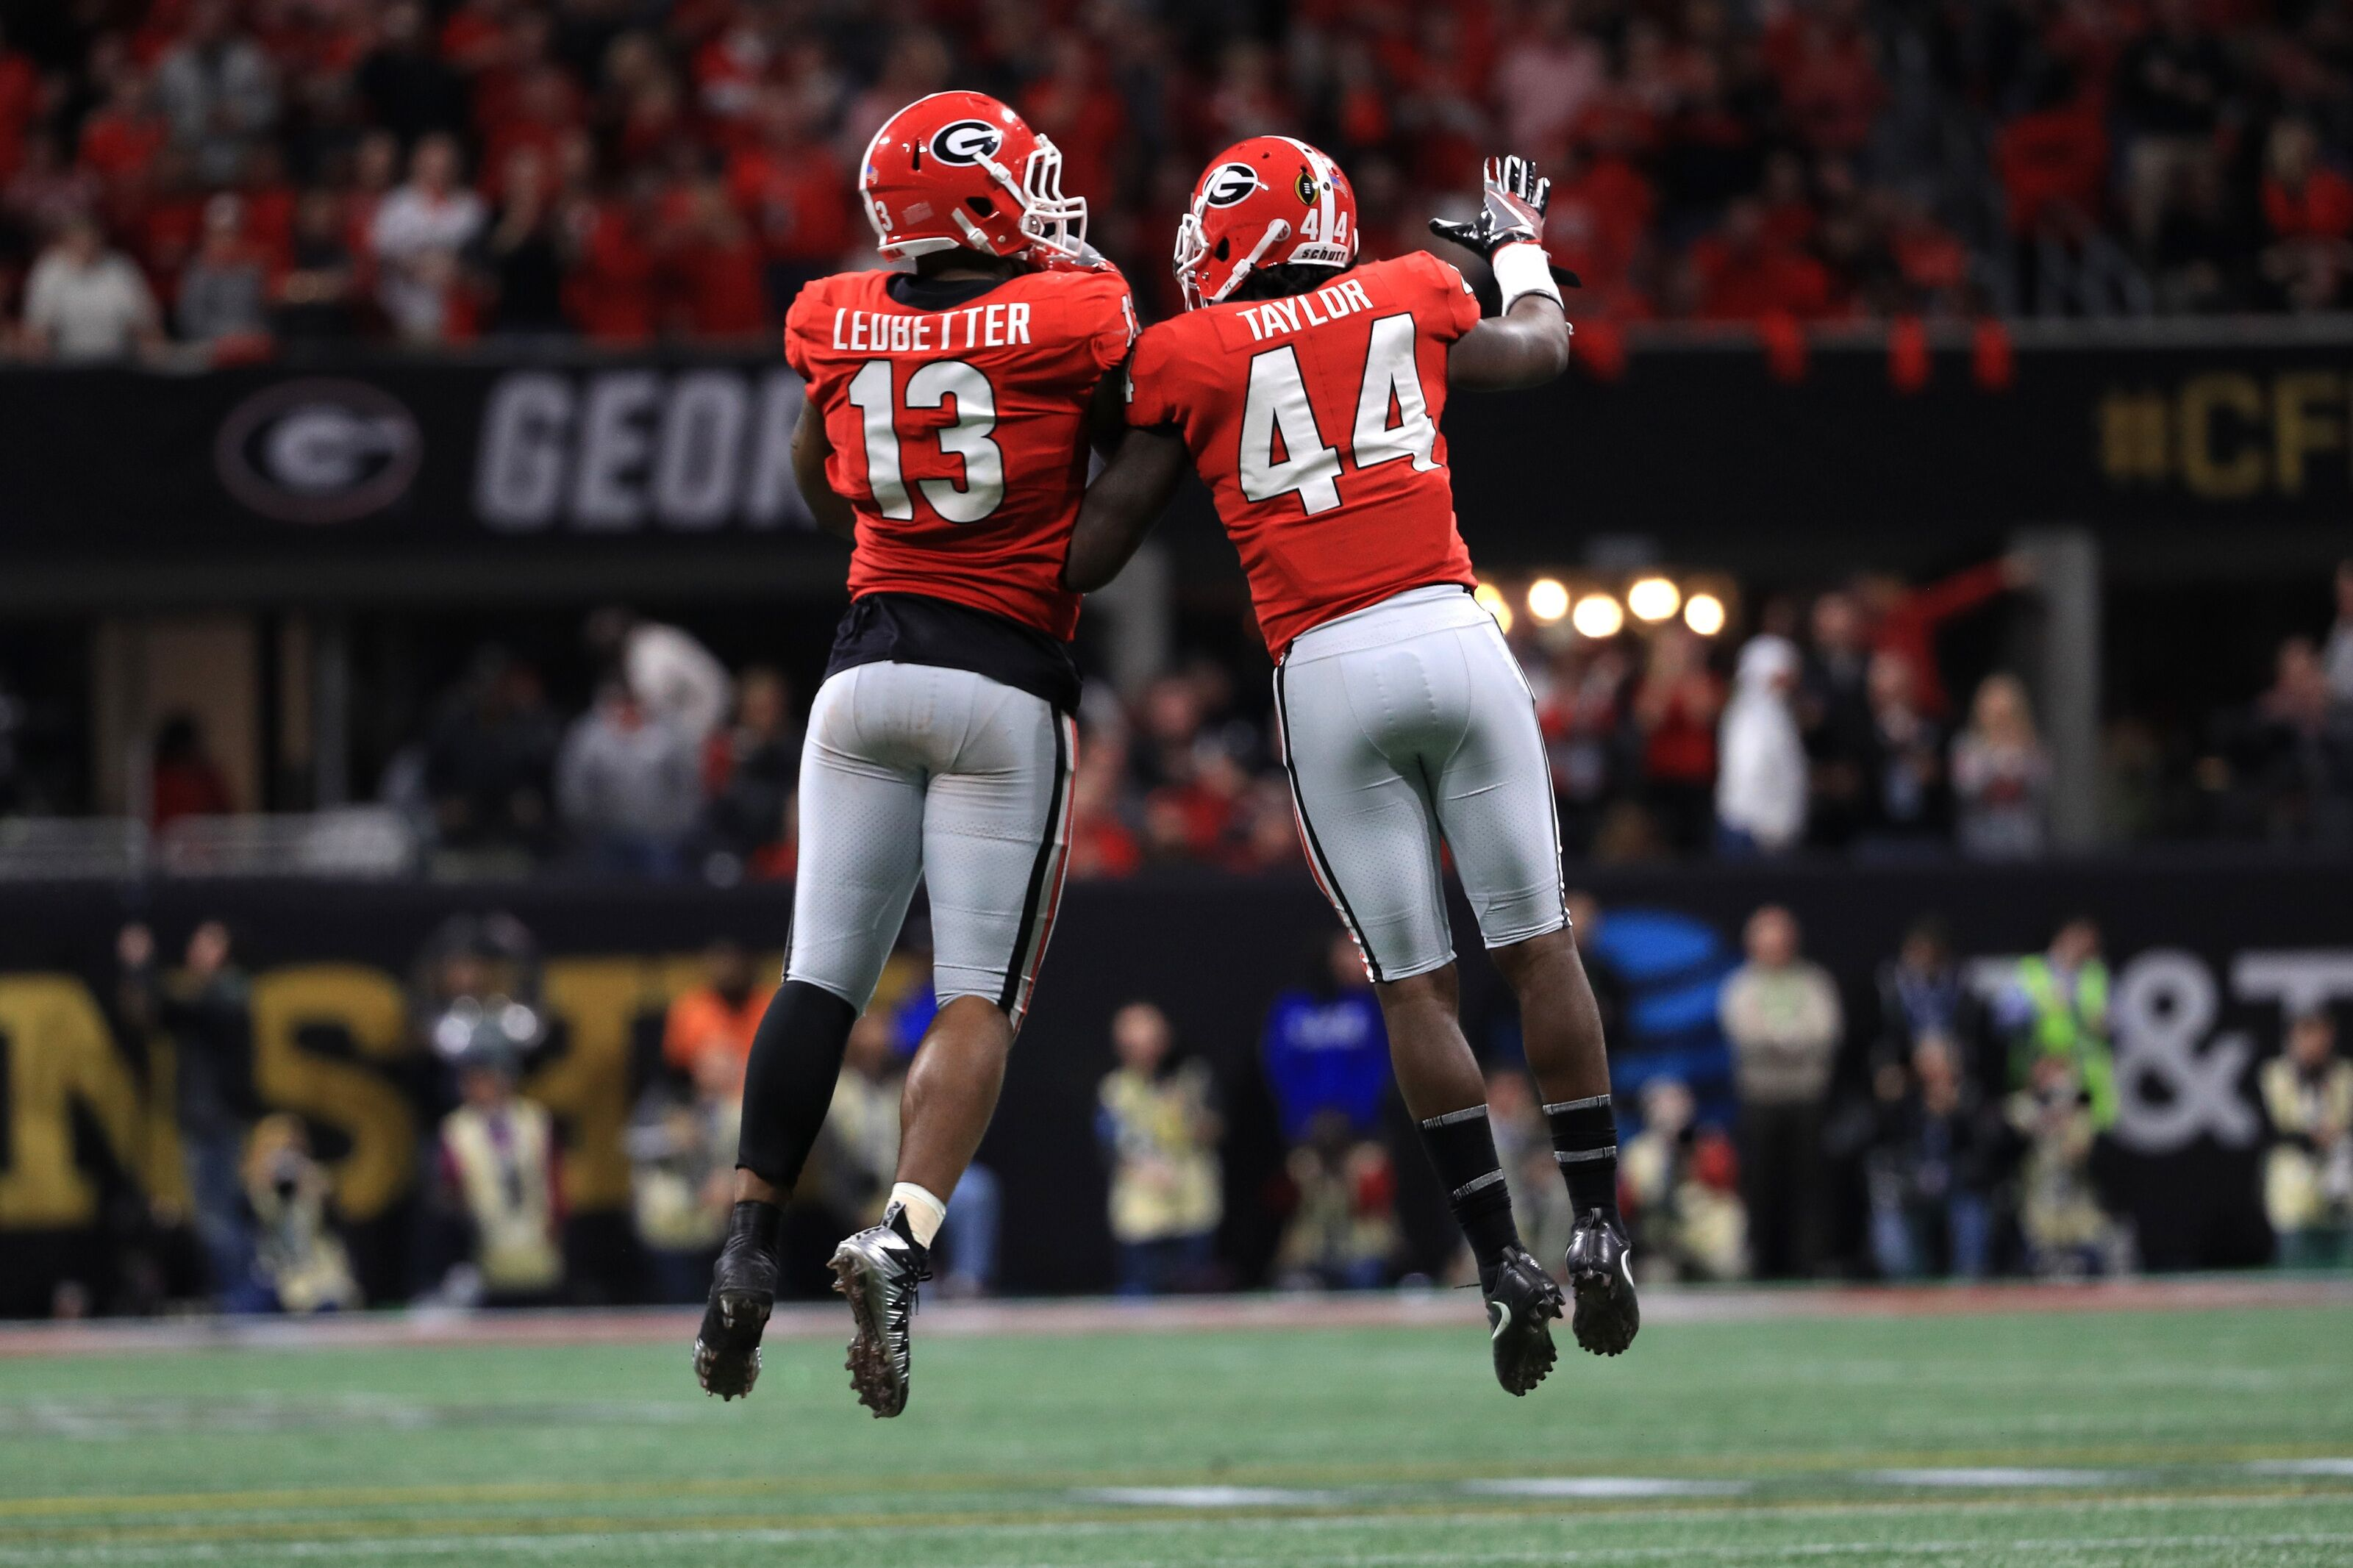 902769632-cfp-national-championship-presented-by-at.jpg